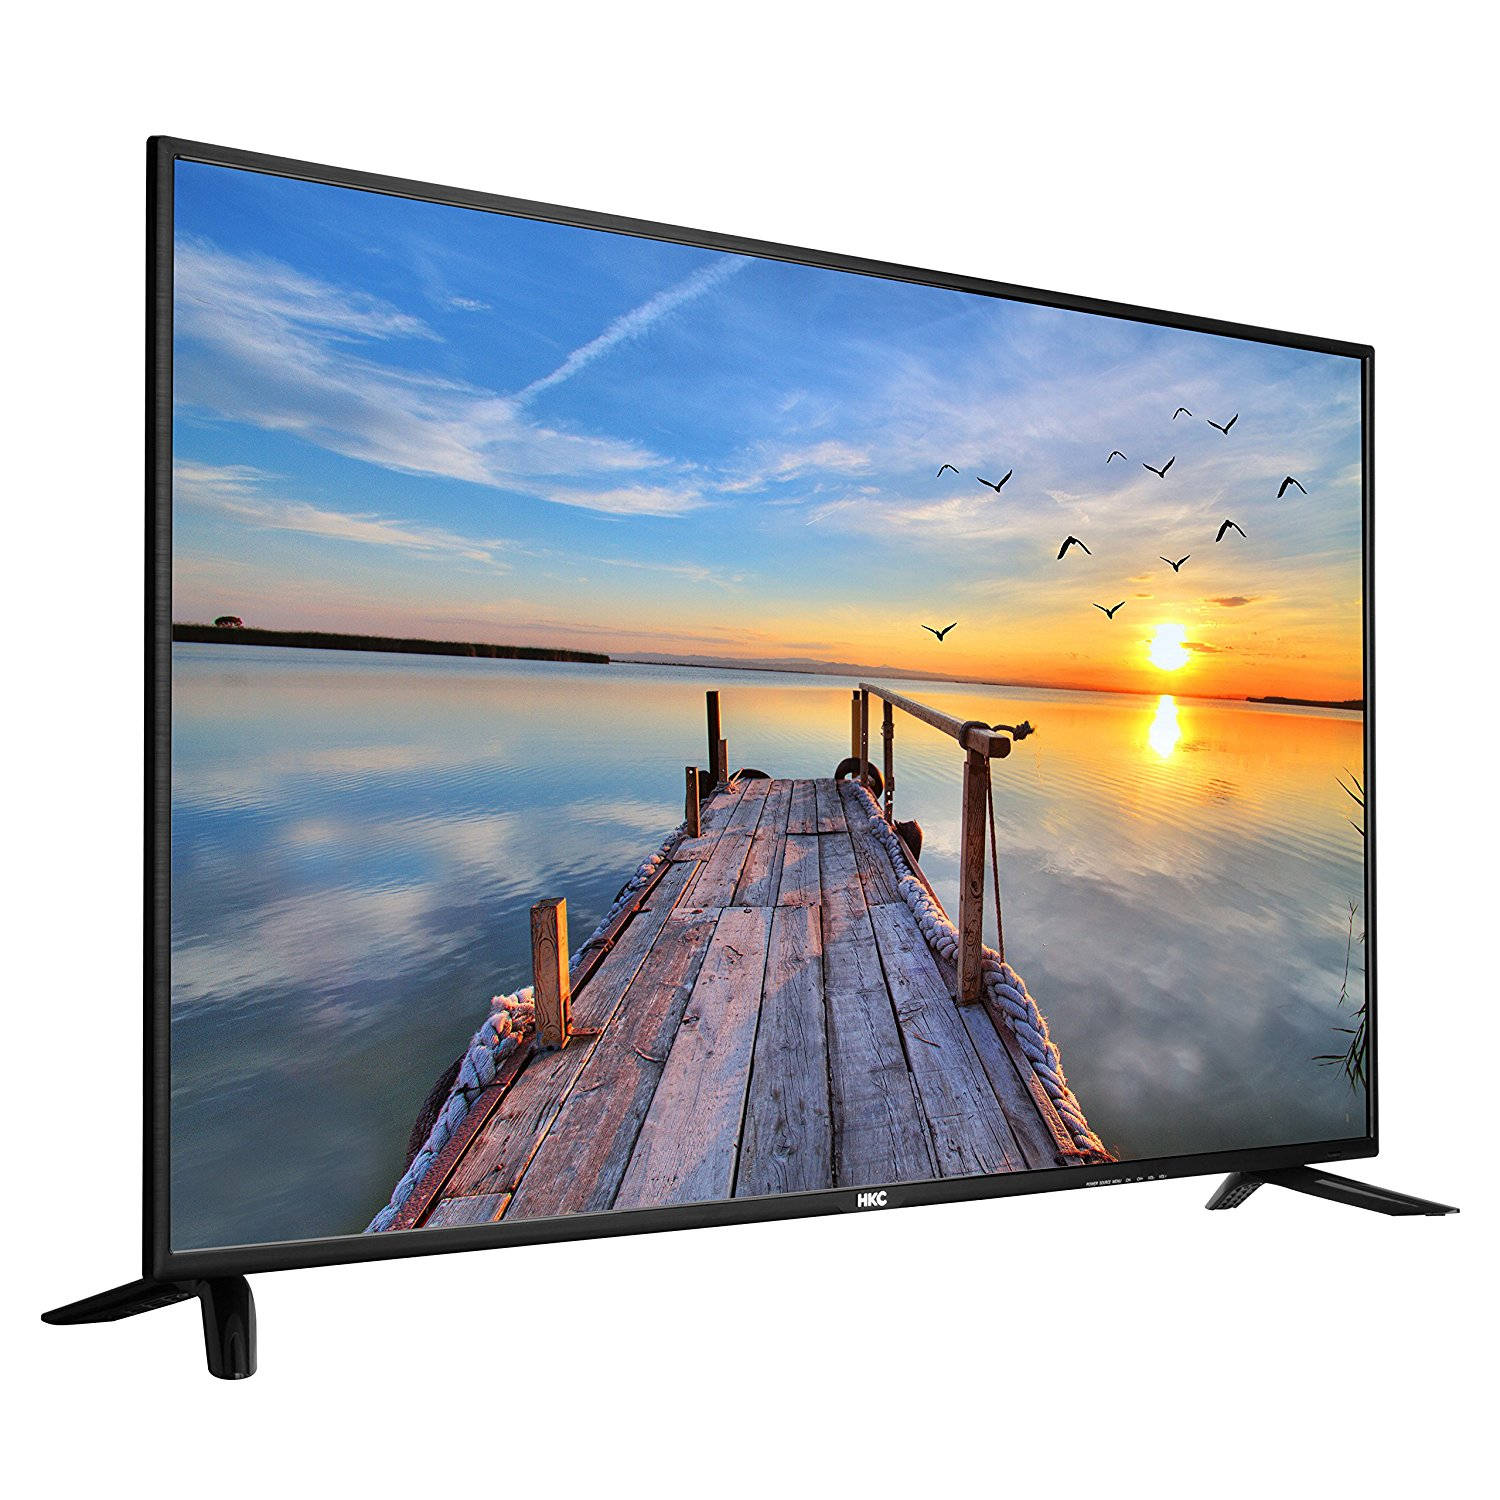 HKC 43F6 43 inch Full HD TV